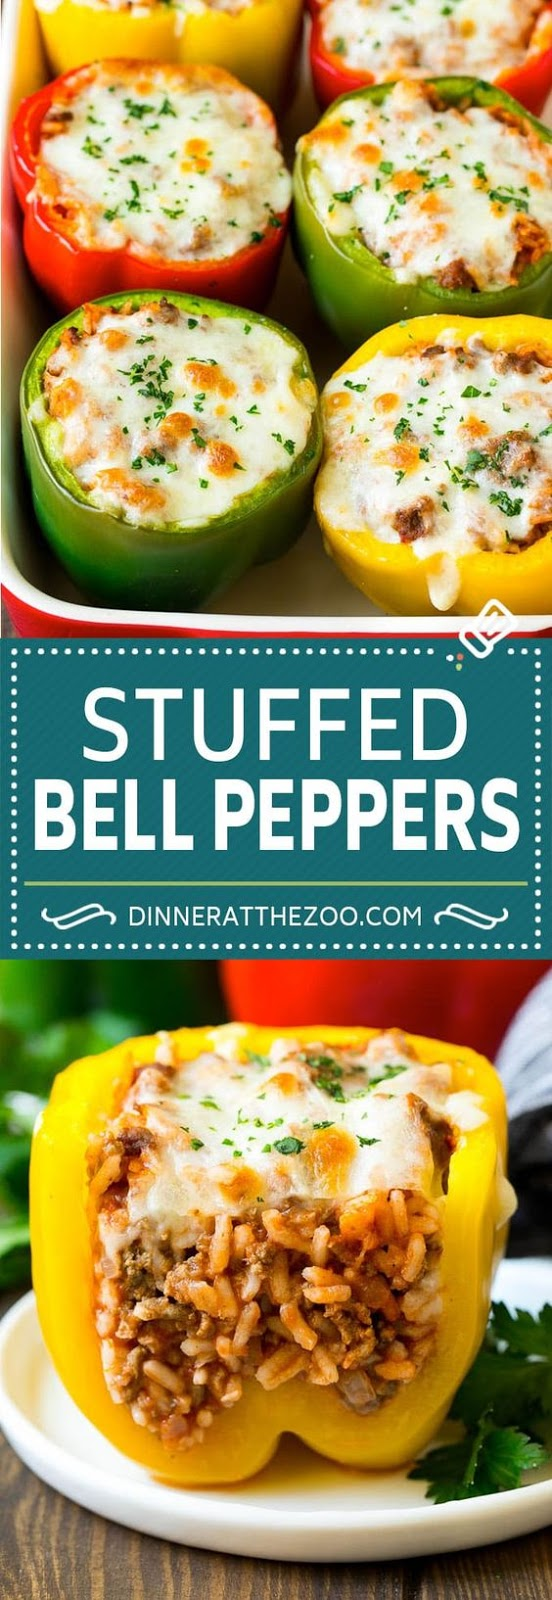 Best and Delicious Stuffed Bell Peppers Recipes